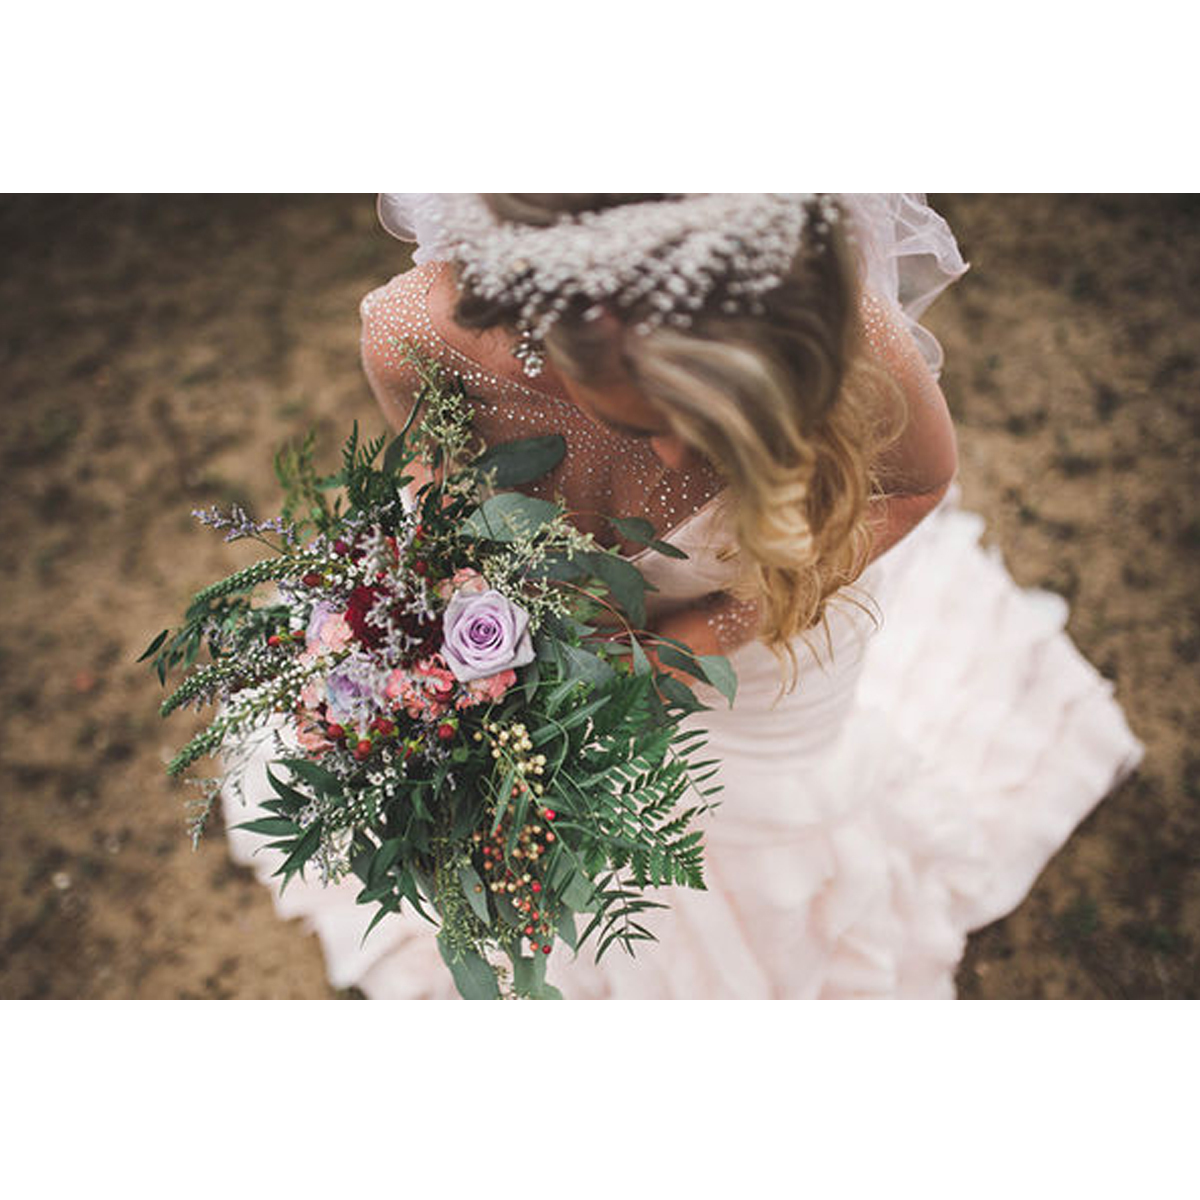 Bride in a white gown and veil holding a green boquet with a few pink flowers photo